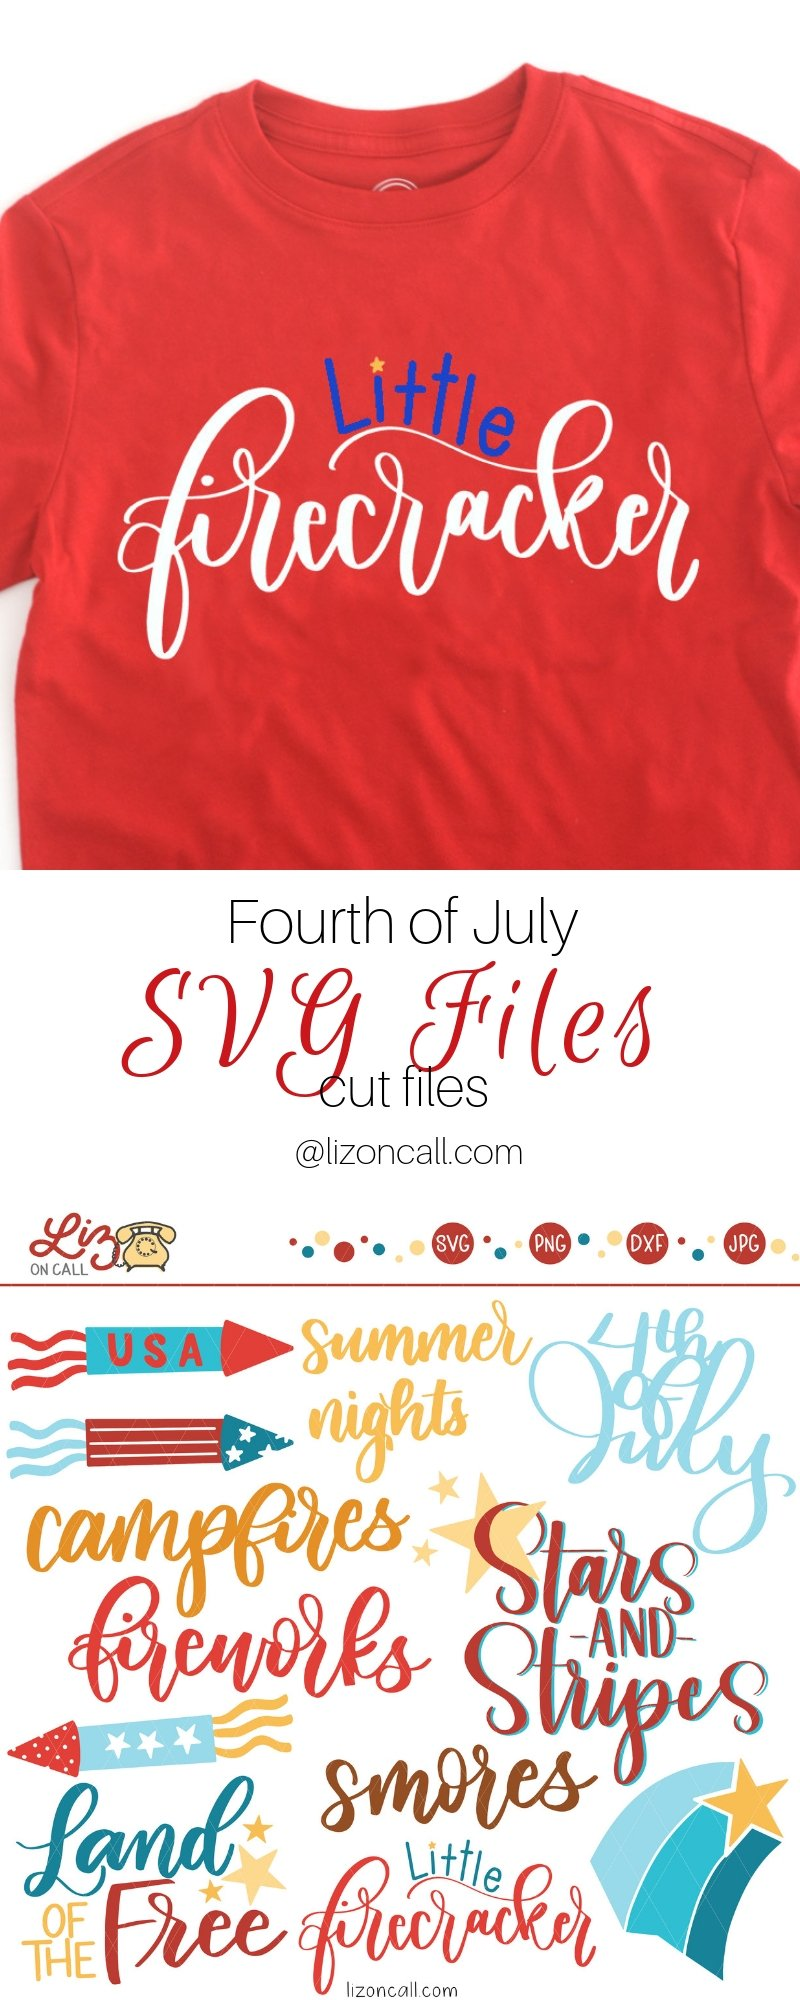 pinnable image with fourth of july cut file designs